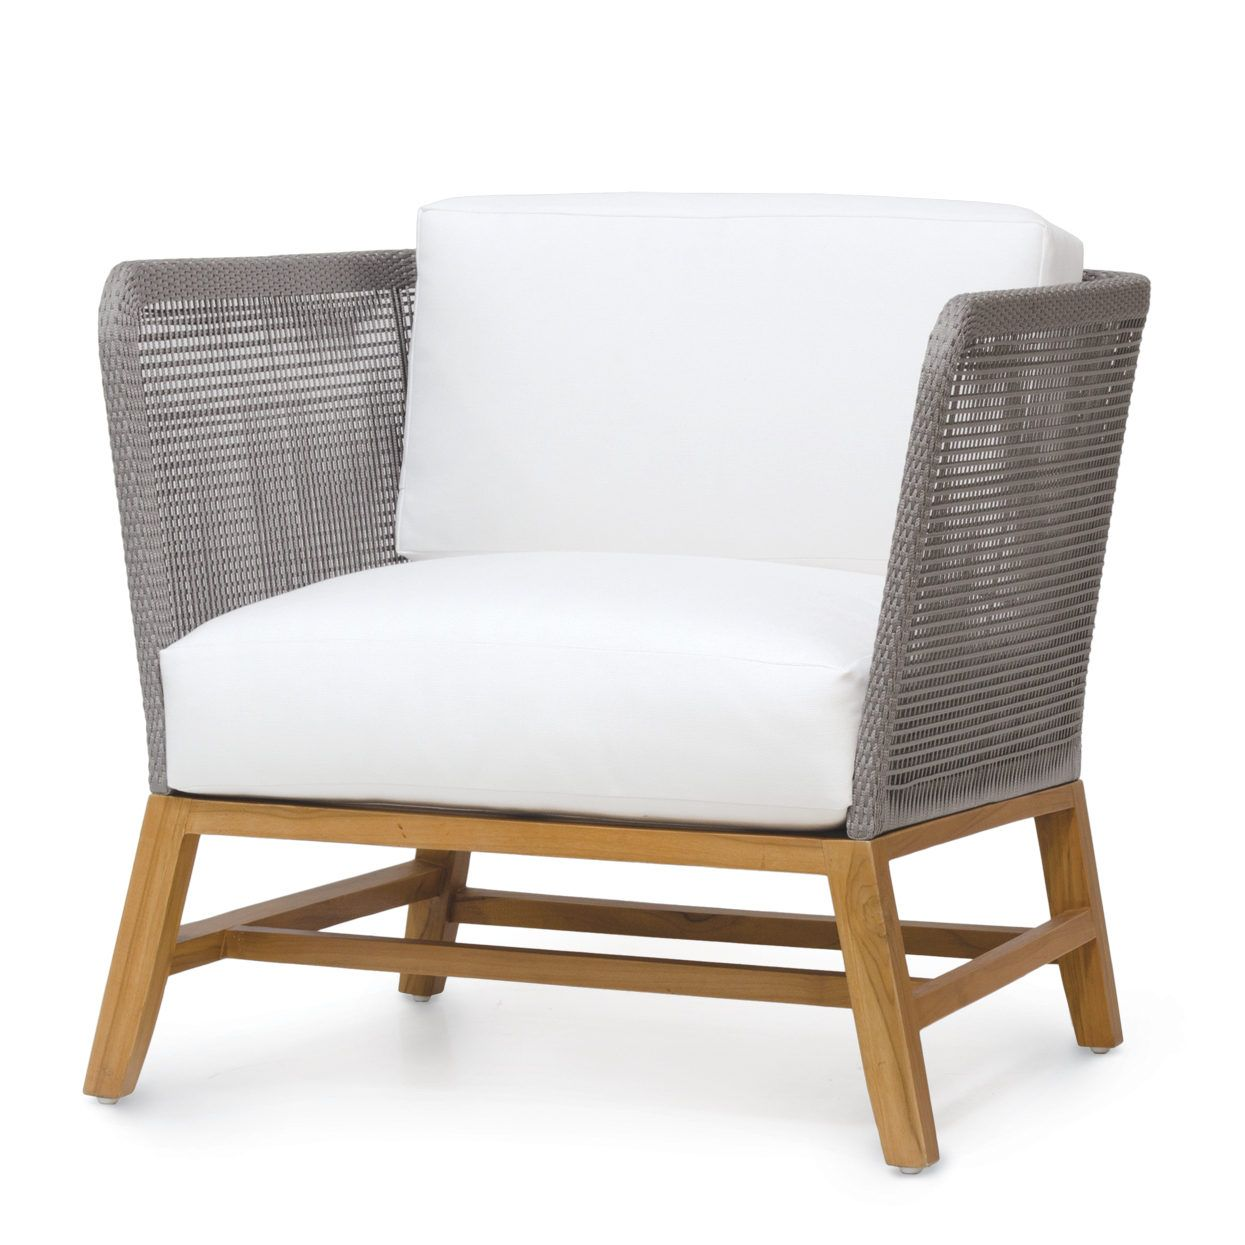 Modern outdoor lounge chairs - Avila Outdoor Lounge Chair